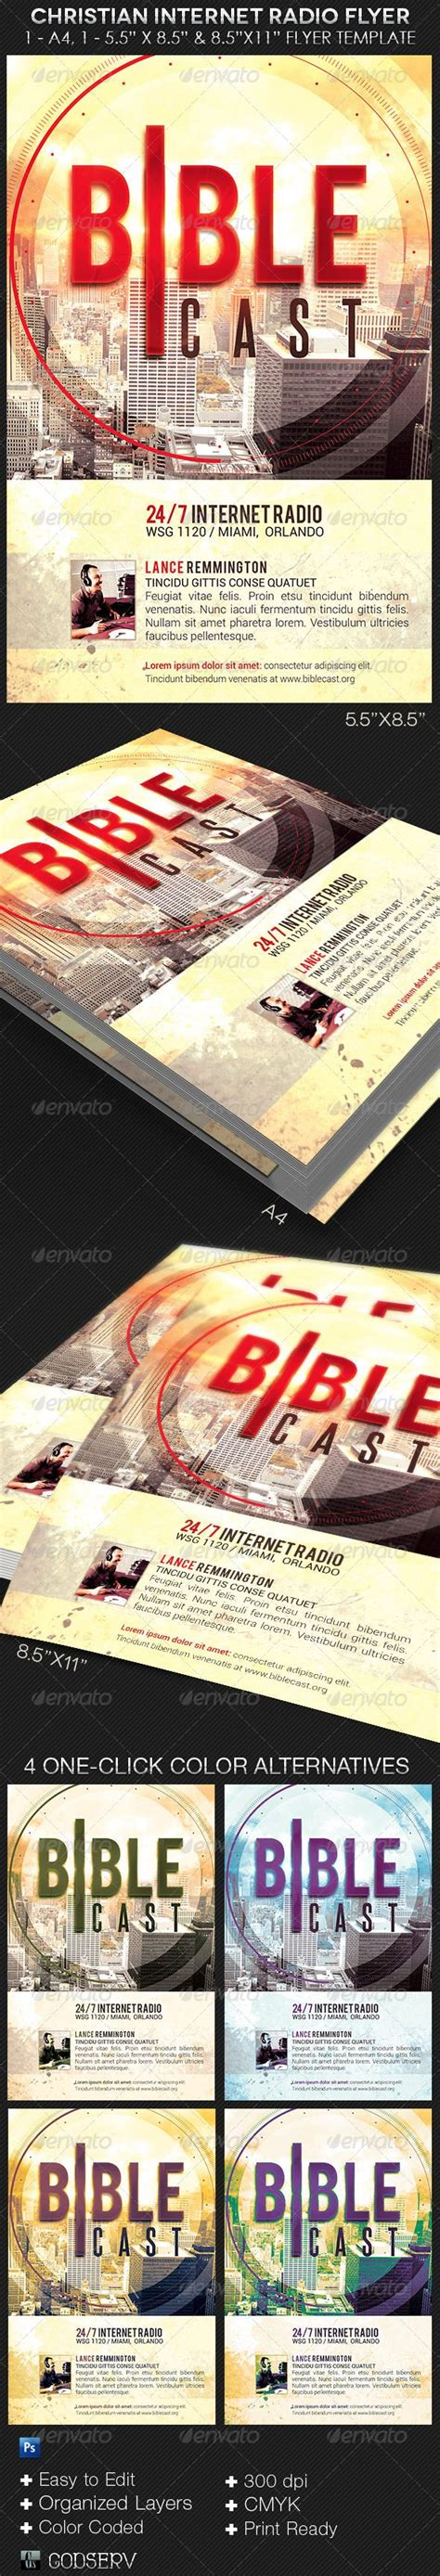 template photoshop radio 17 best images about christian flyer on pinterest pastor